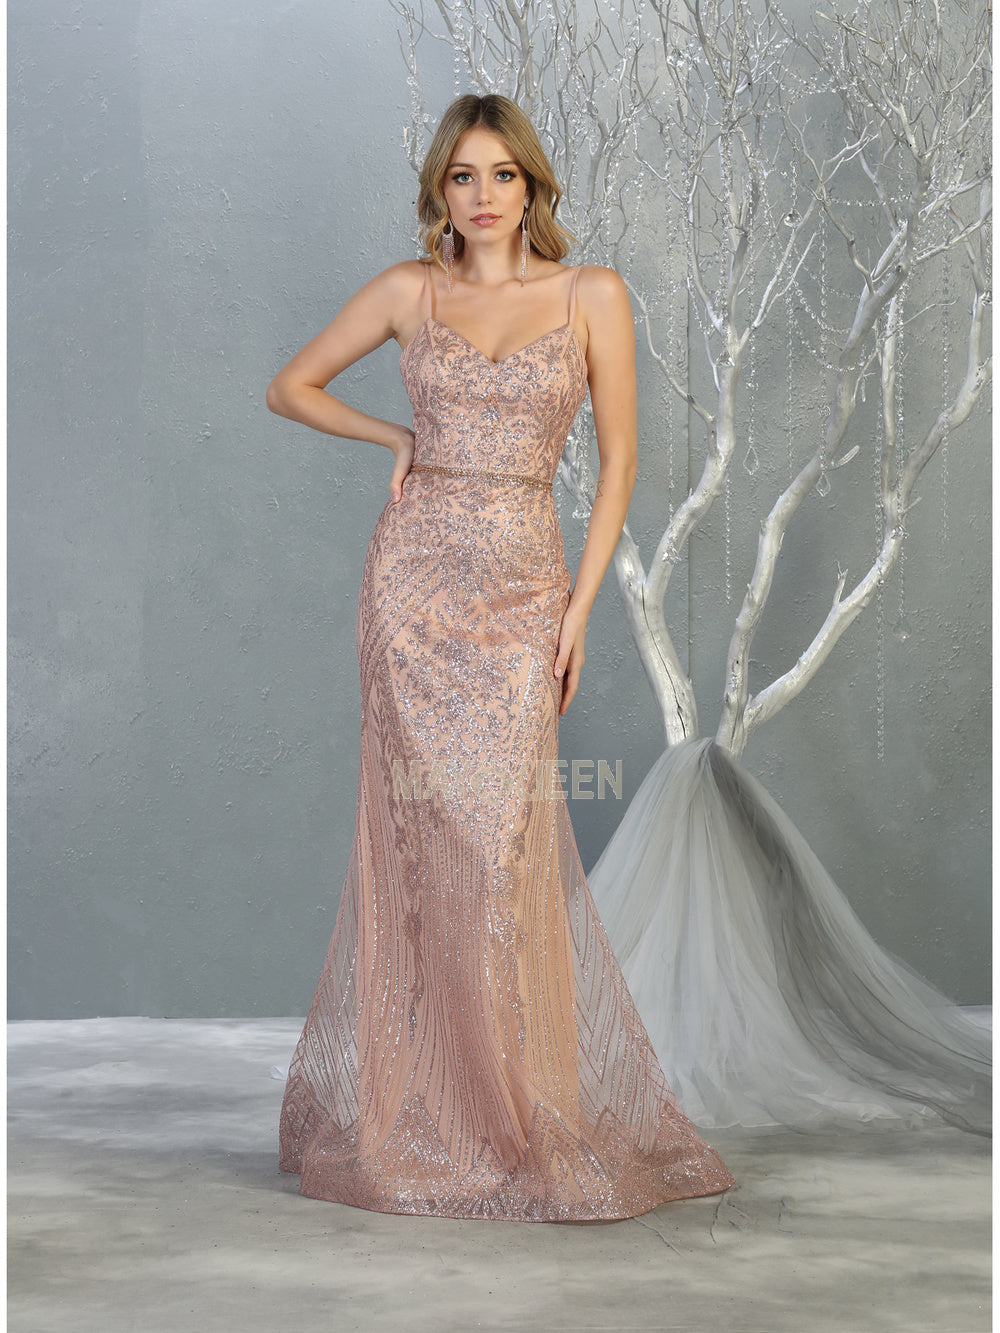 Mayqueen Size Chart E MQ 7868 - Fit and Flare Sweetheart Neck Gown with Glitter Design and Beaded Belt - Diggz Prom